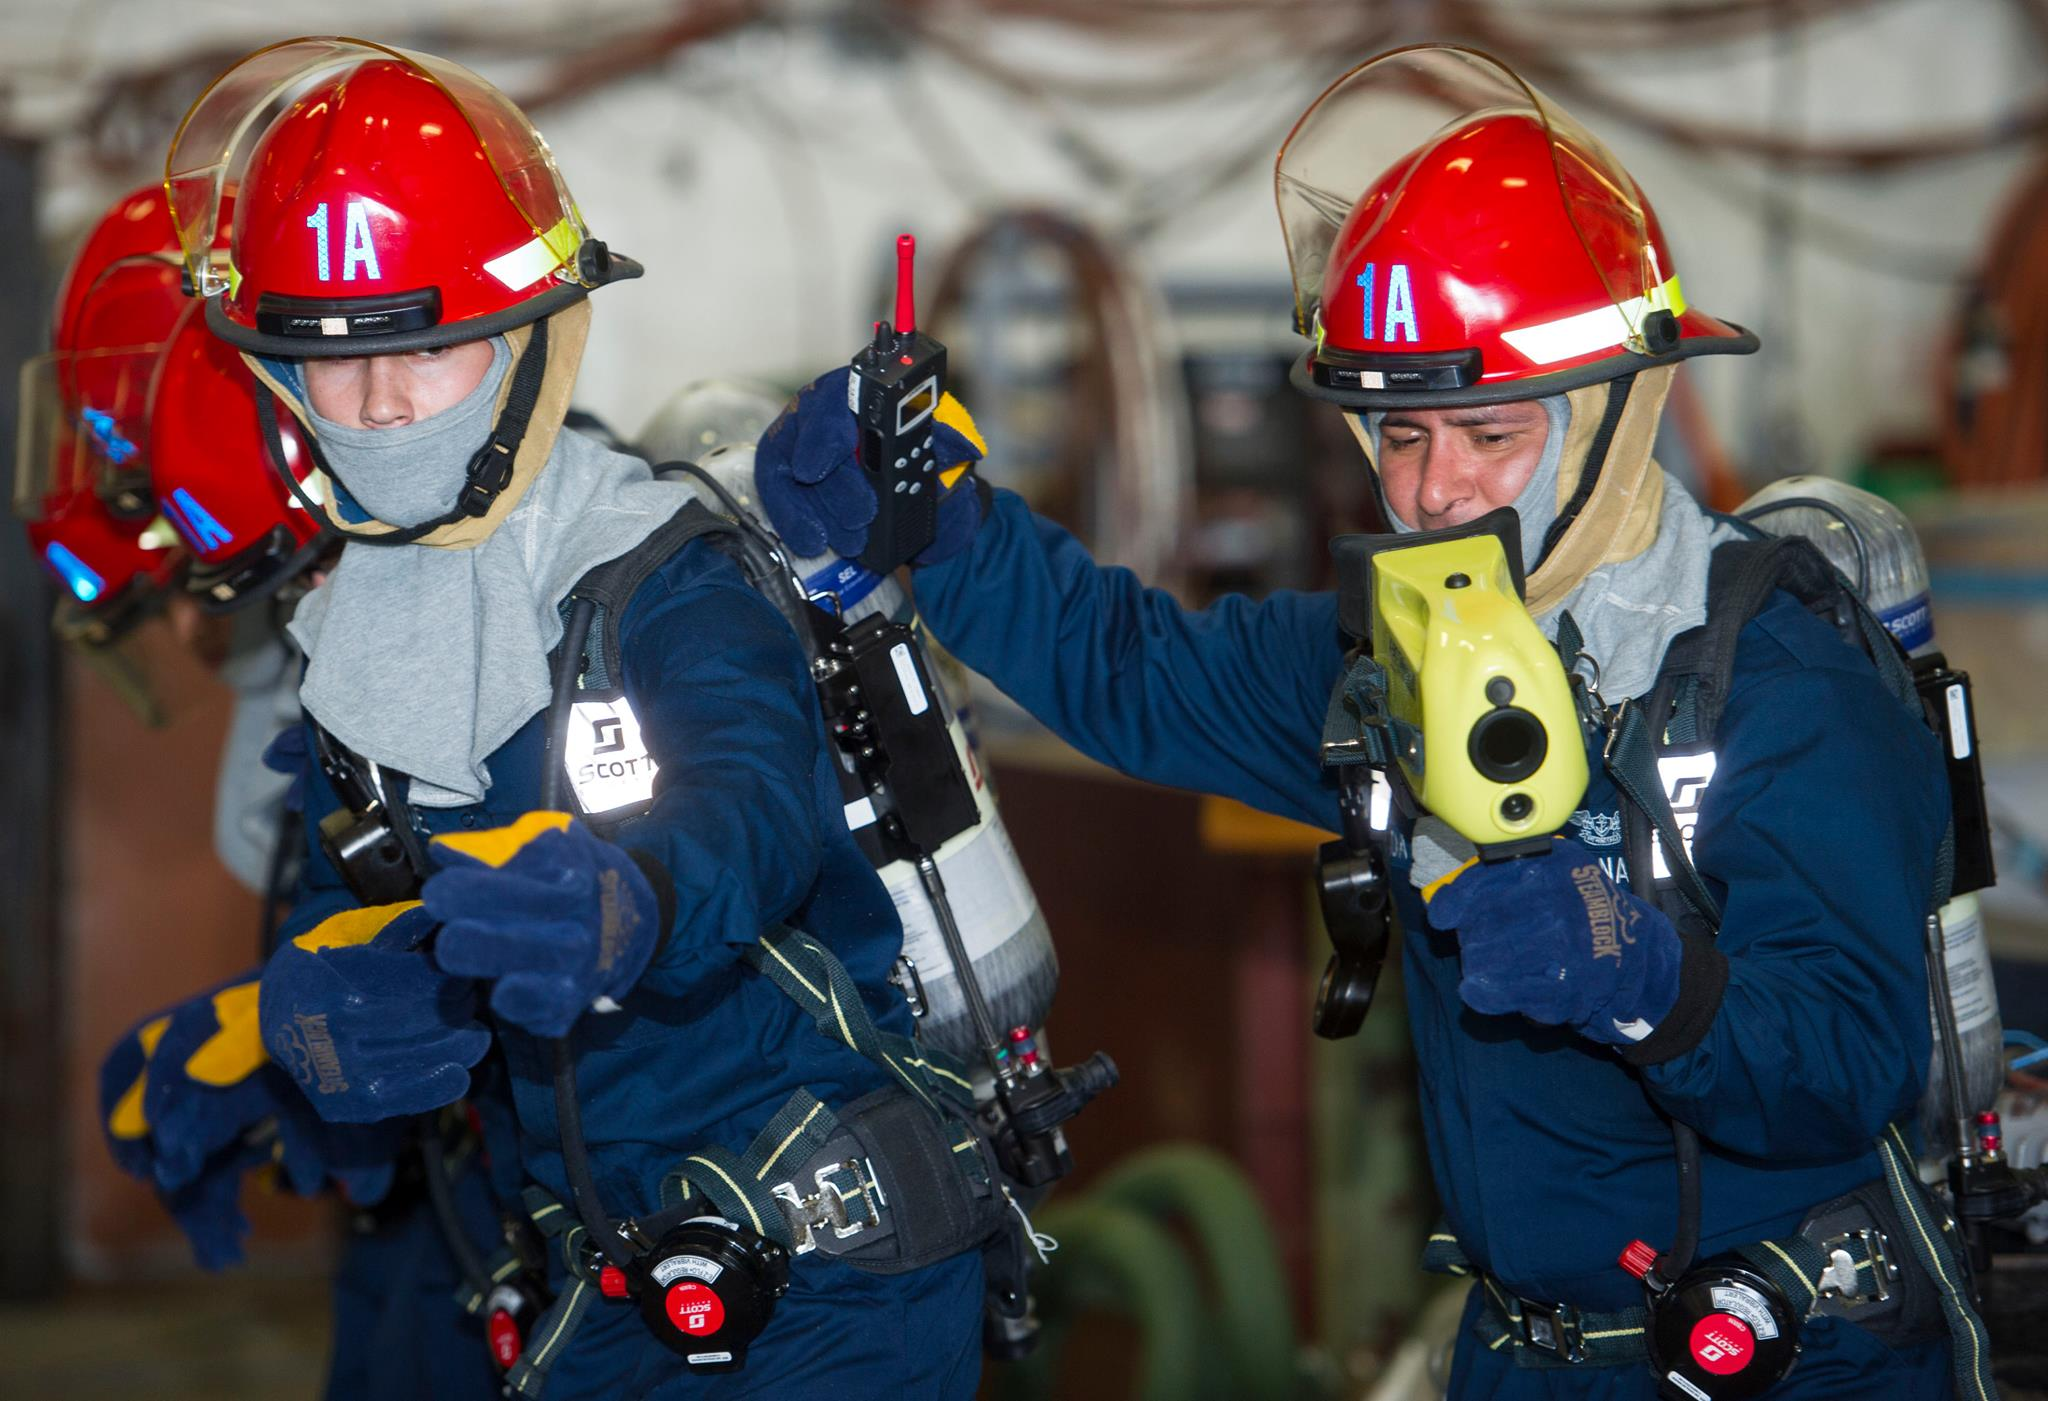 Sailors learn how to properly fight a fire during a general quarters drill aboard Pre-Commissioning Unit Gerald R. Ford (CVN 78). This ship-wide general quarters drill focused on damage control and emergency responses. Newport News, Virginia, March 10, 2016 | U.S. Navy photo by Mass Communication Specialist 2nd Class Ryan Litzenberger/Released, via USS Gerald R. Ford - CVN 78 - via Facebook page; St. George News